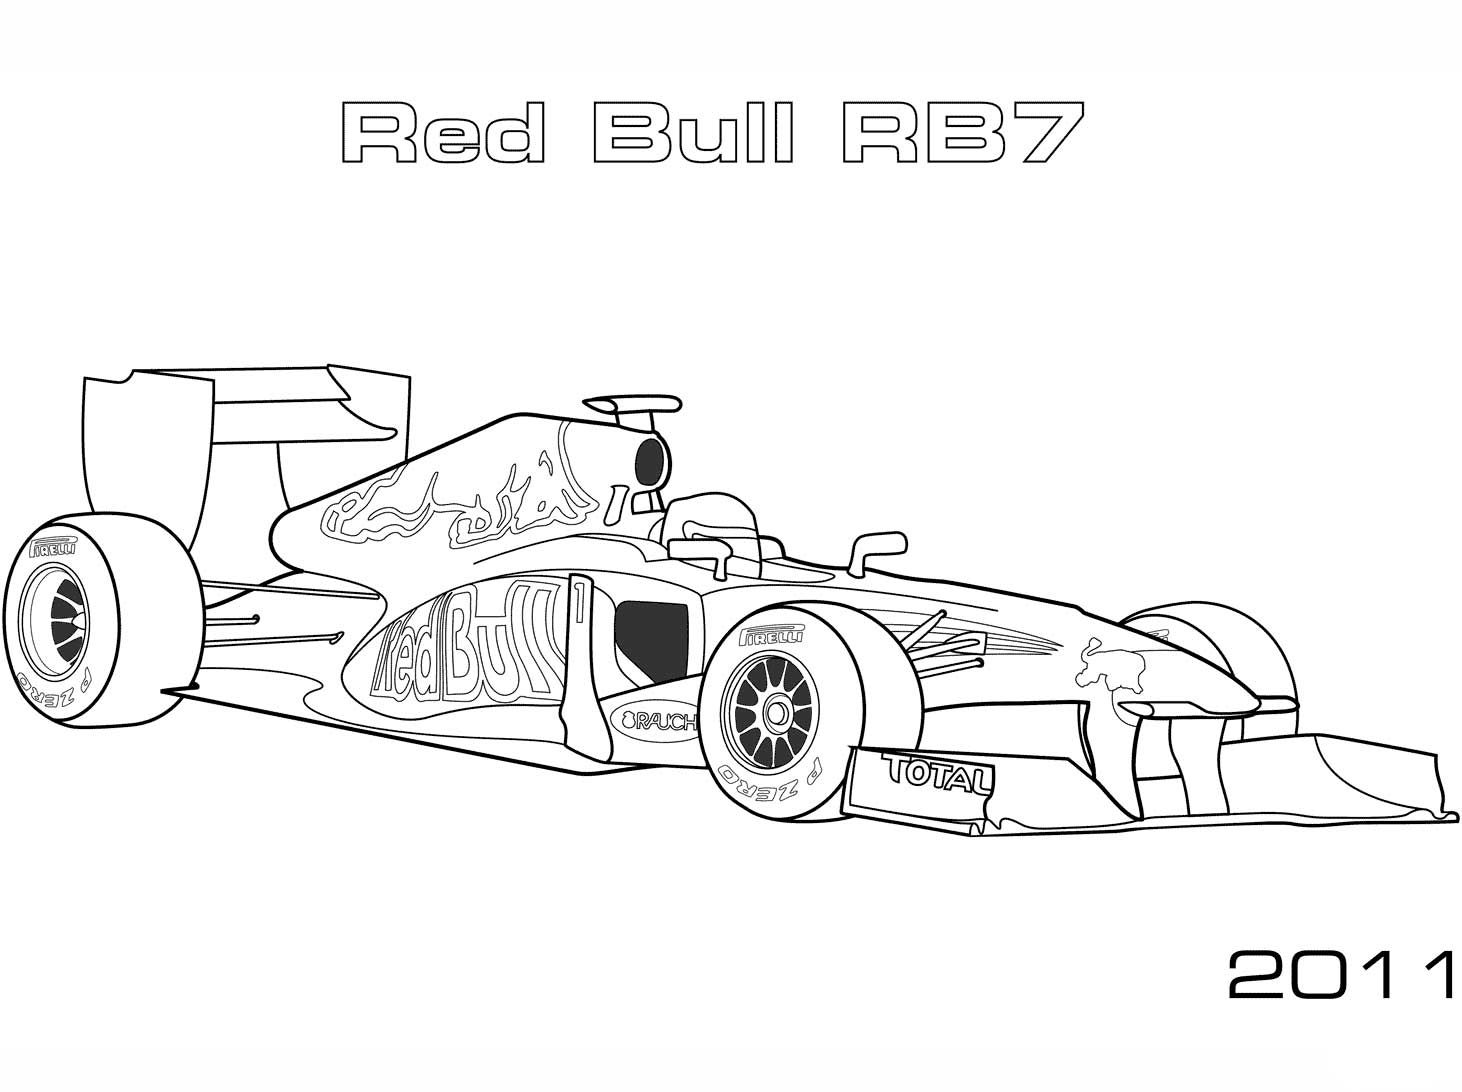 Red Bull Rb7 Formula 1 Car Coloring Page Cars Coloring Pages Coloring Pages Red Bull